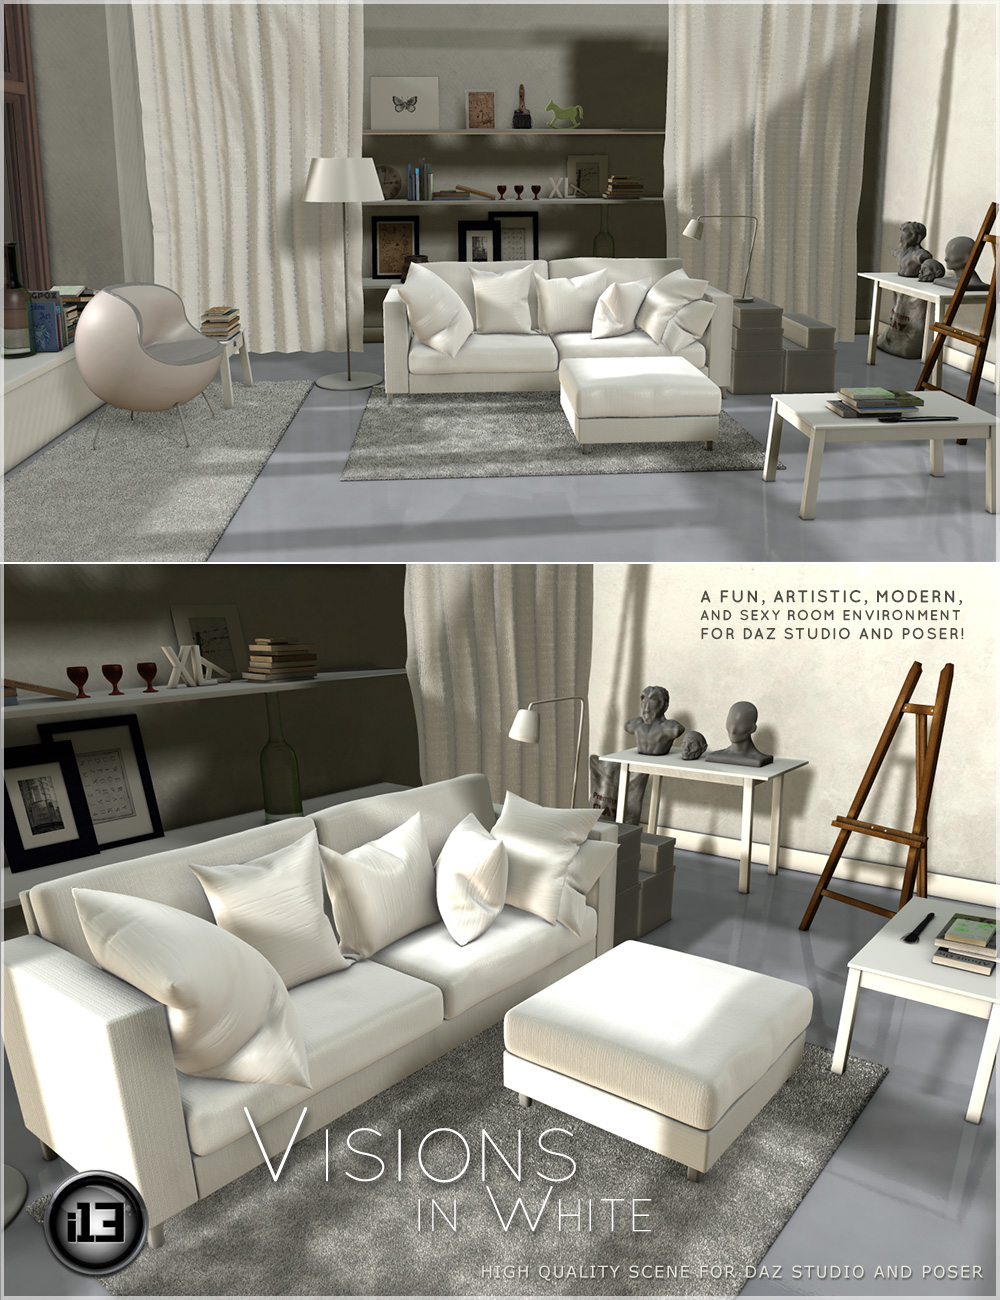 i13 Visions in White by: ironman13, 3D Models by Daz 3D